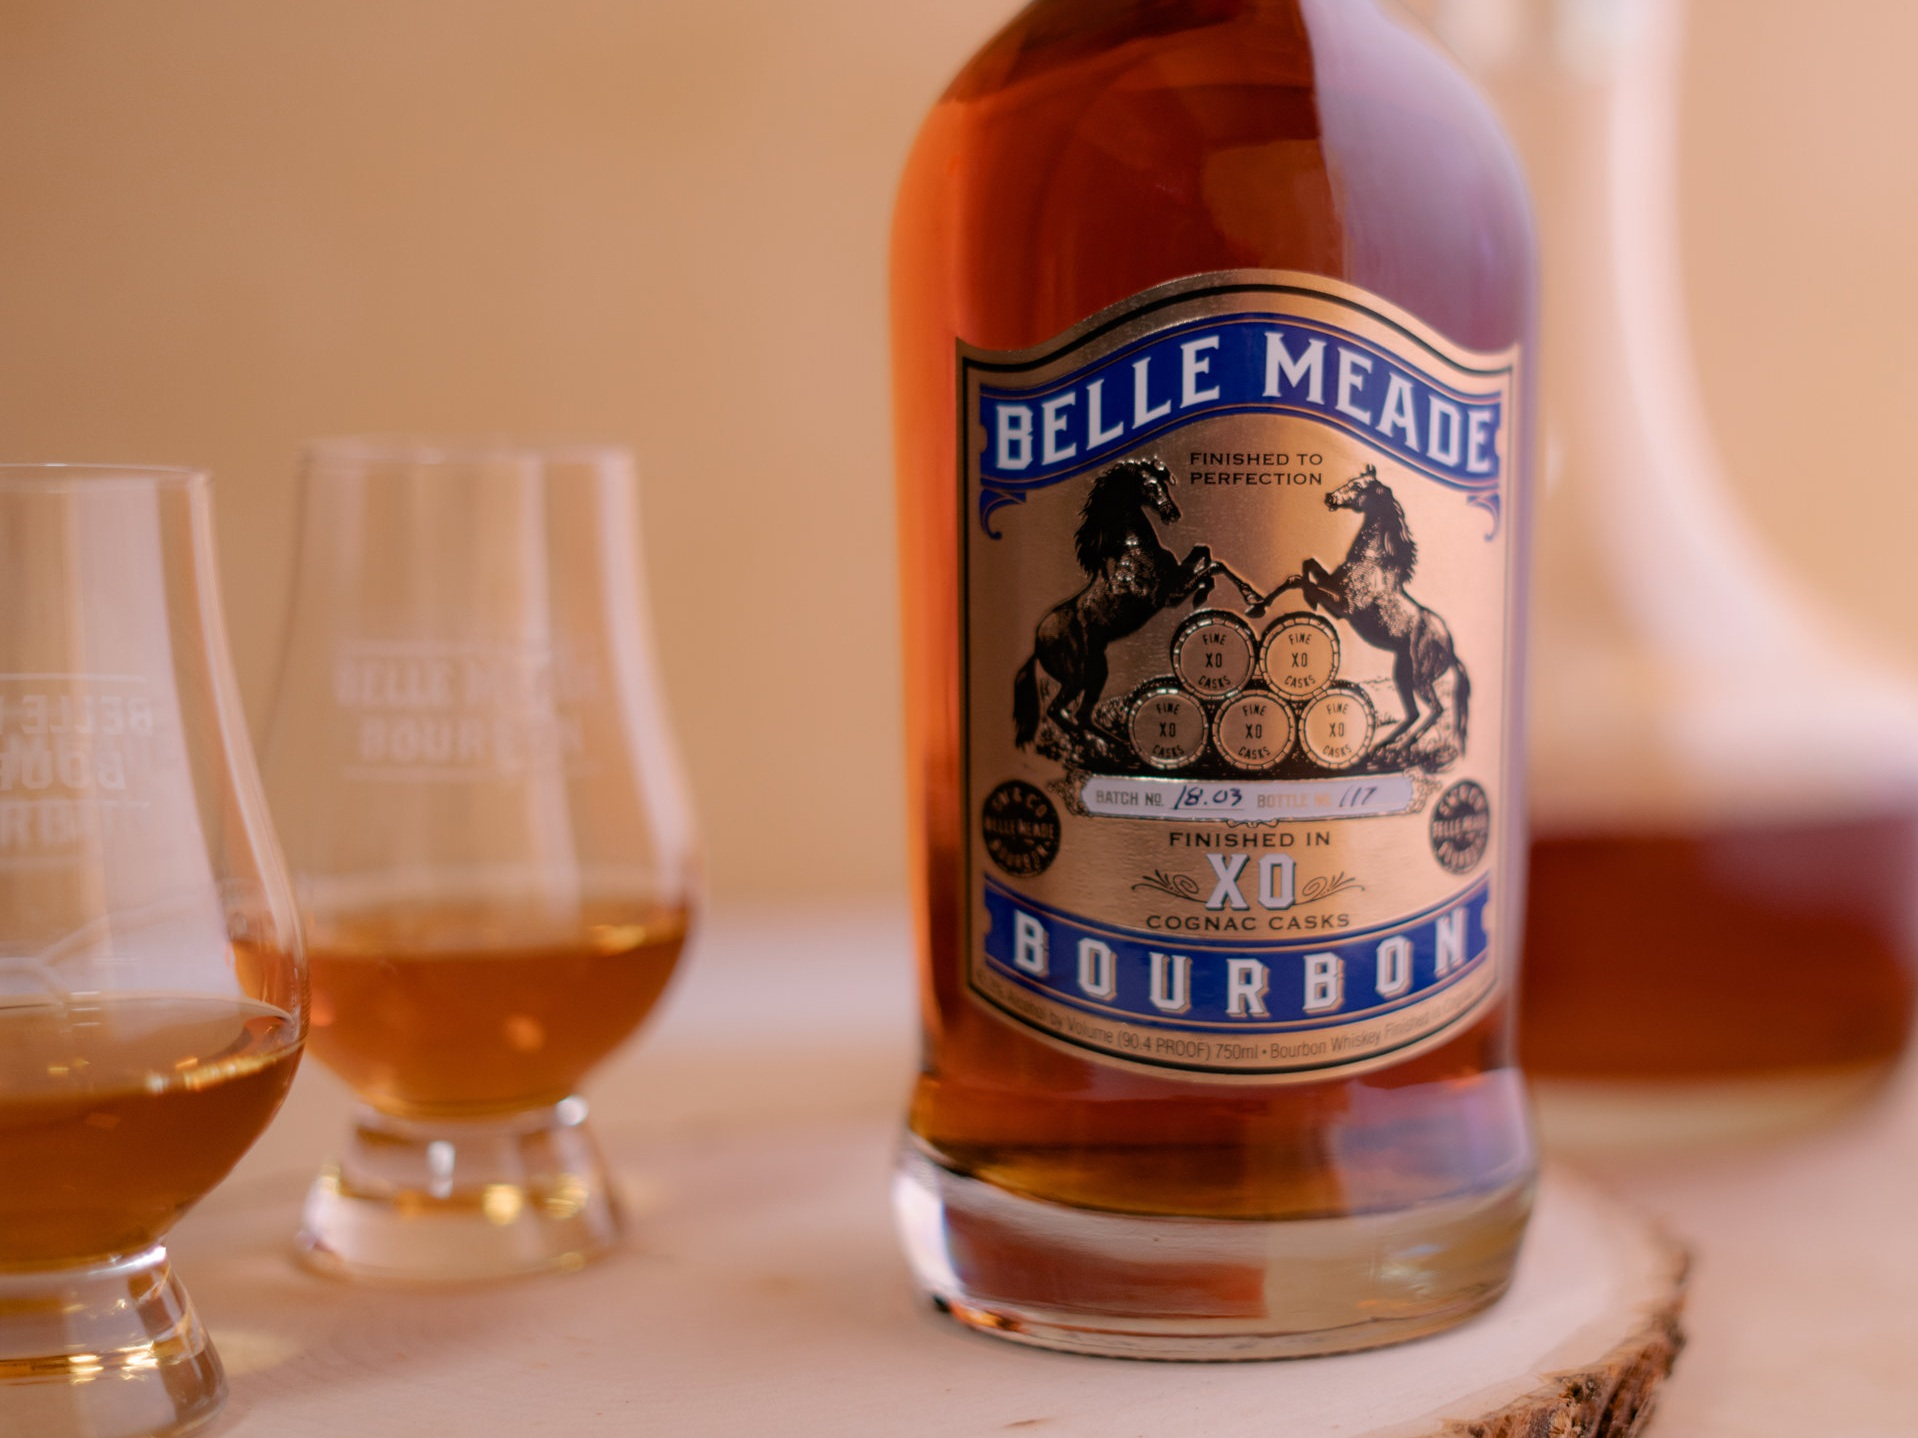 Award-winning Belle Meade Bourbon Cognac Cask Finish